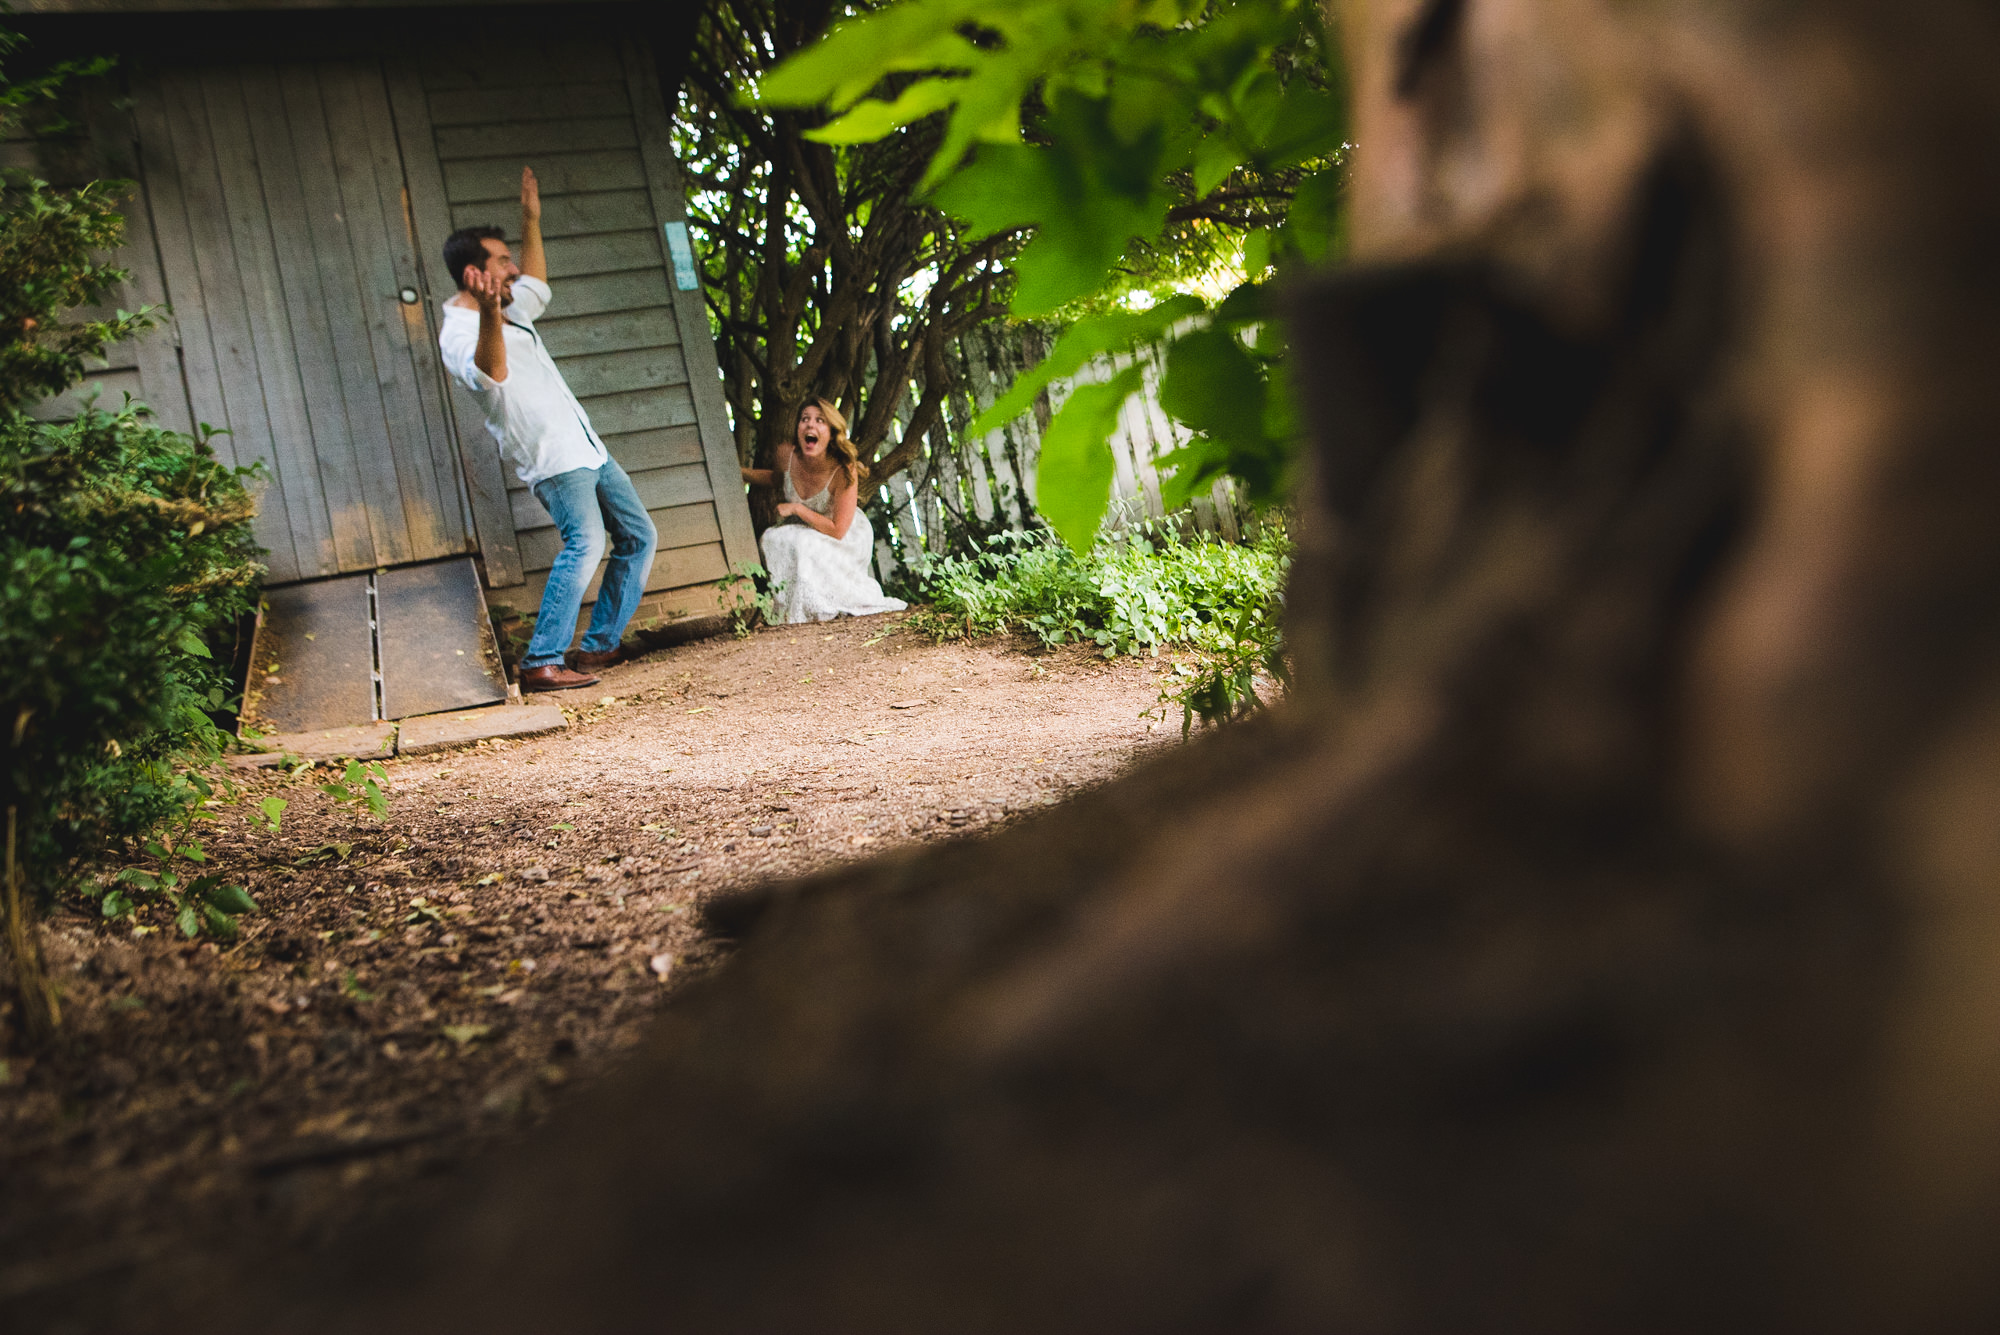 Old Stone House DC Engagement Sesssion_-4.jpg